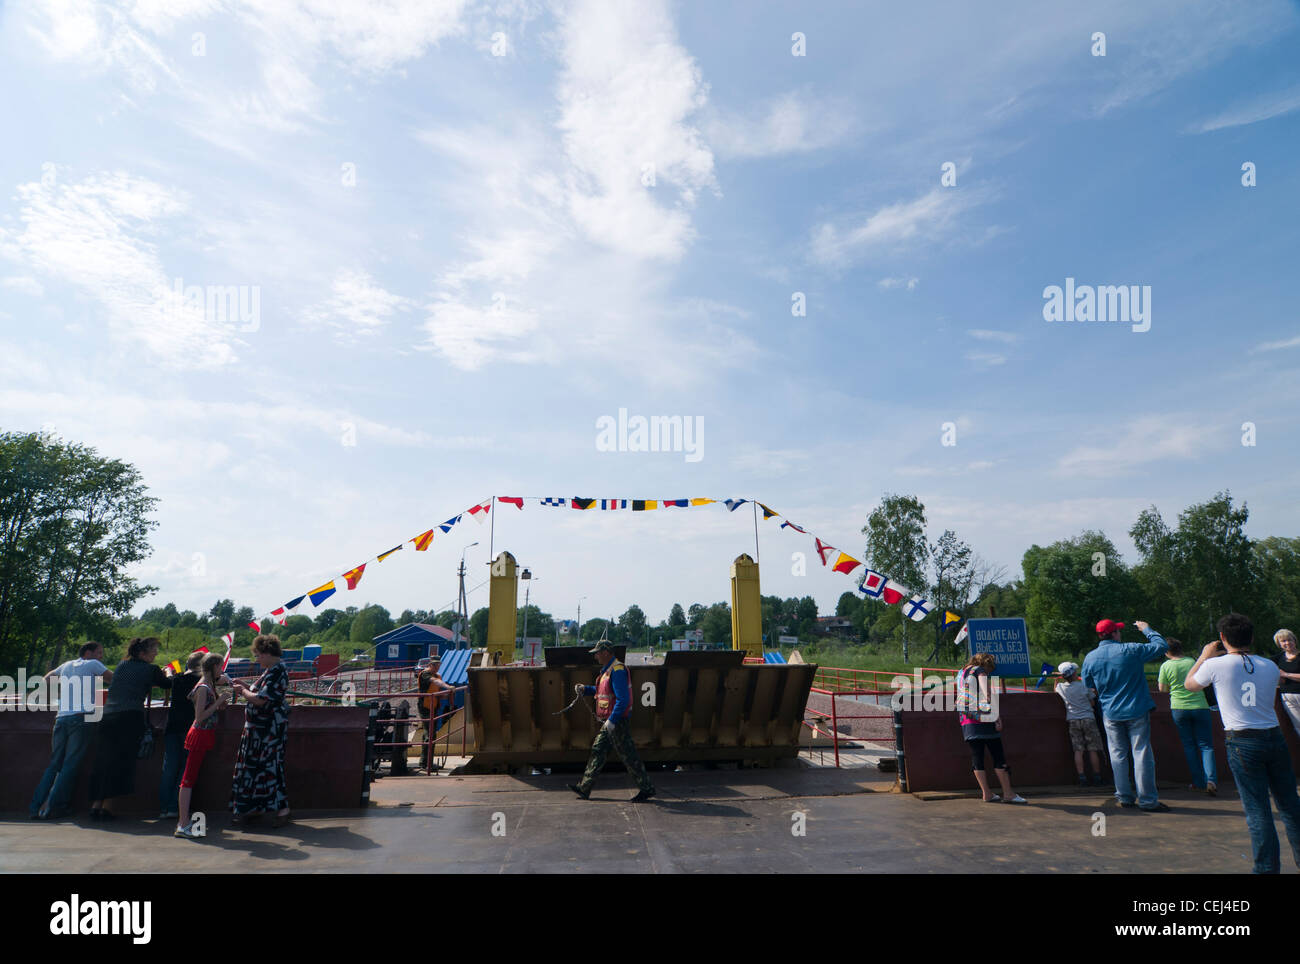 Myshkin Stock Photos   Myshkin Stock Images - Alamy 6f2de841c2f25